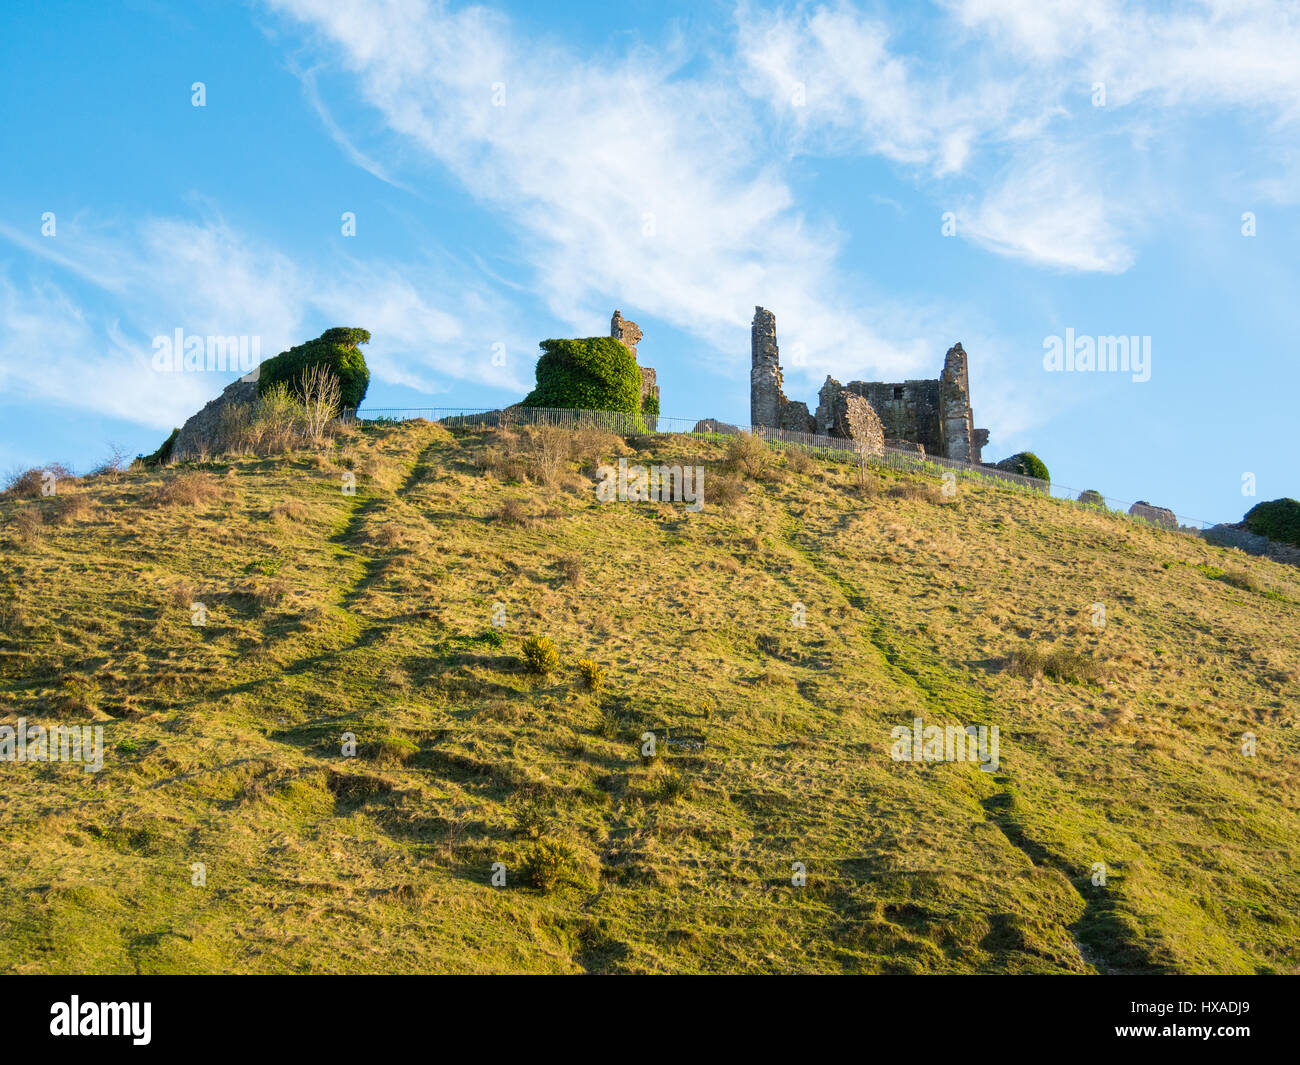 Wispy clouds and blue sky above the historic remainds of Corfe Castle, Corfe Castle, Dorset, UK - Stock Image